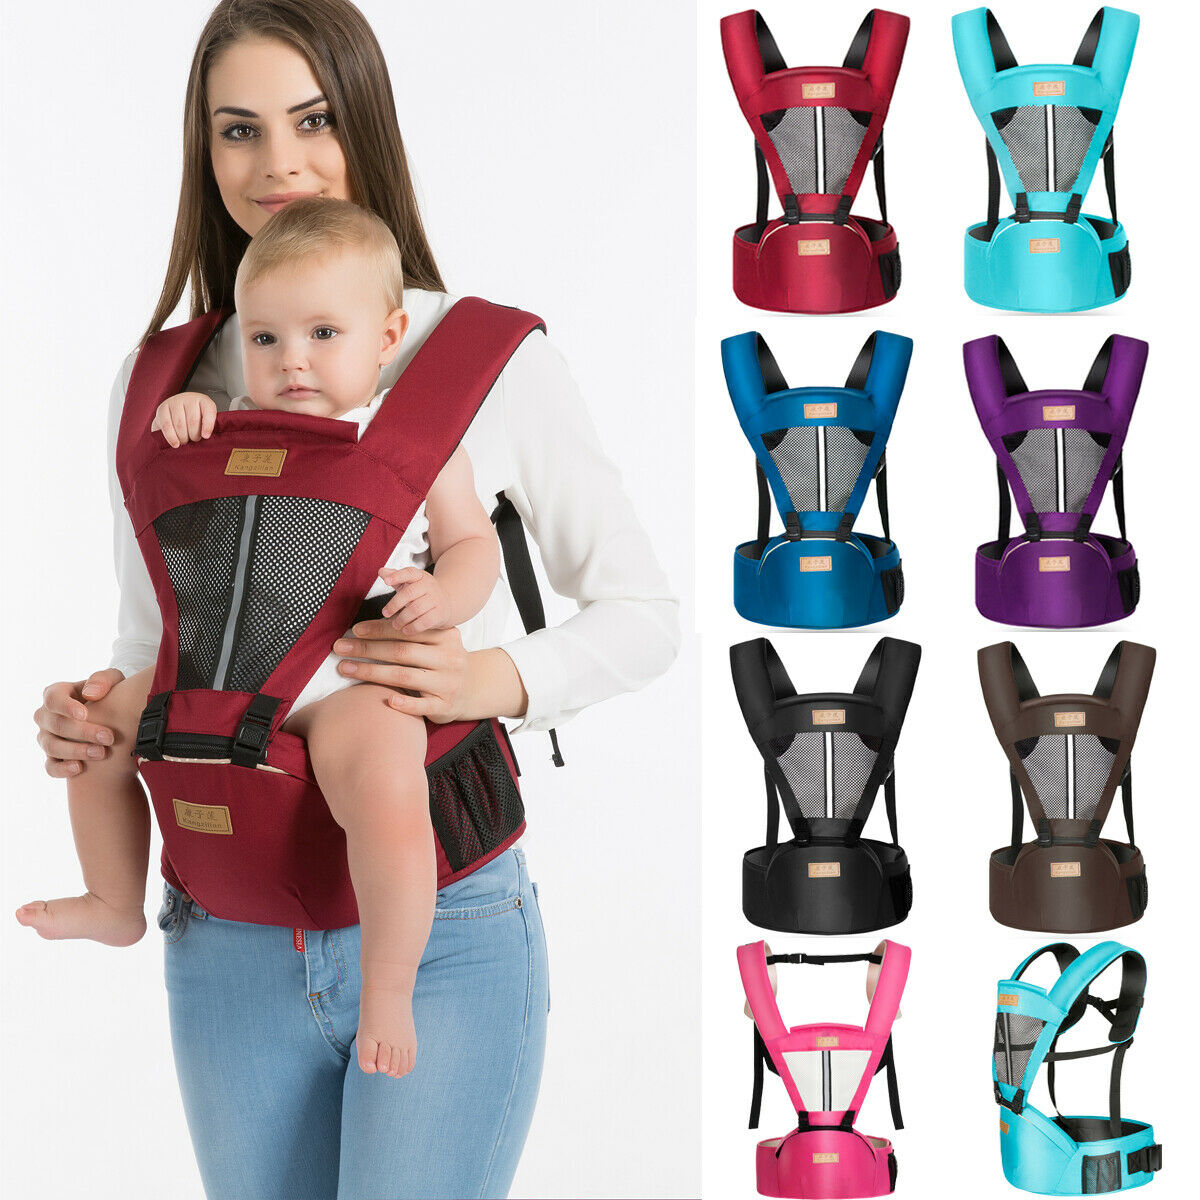 Portable Newborn Baby Carrier Toddler Kangaroo Sling Wrap And Hipseat For 0-36 Months